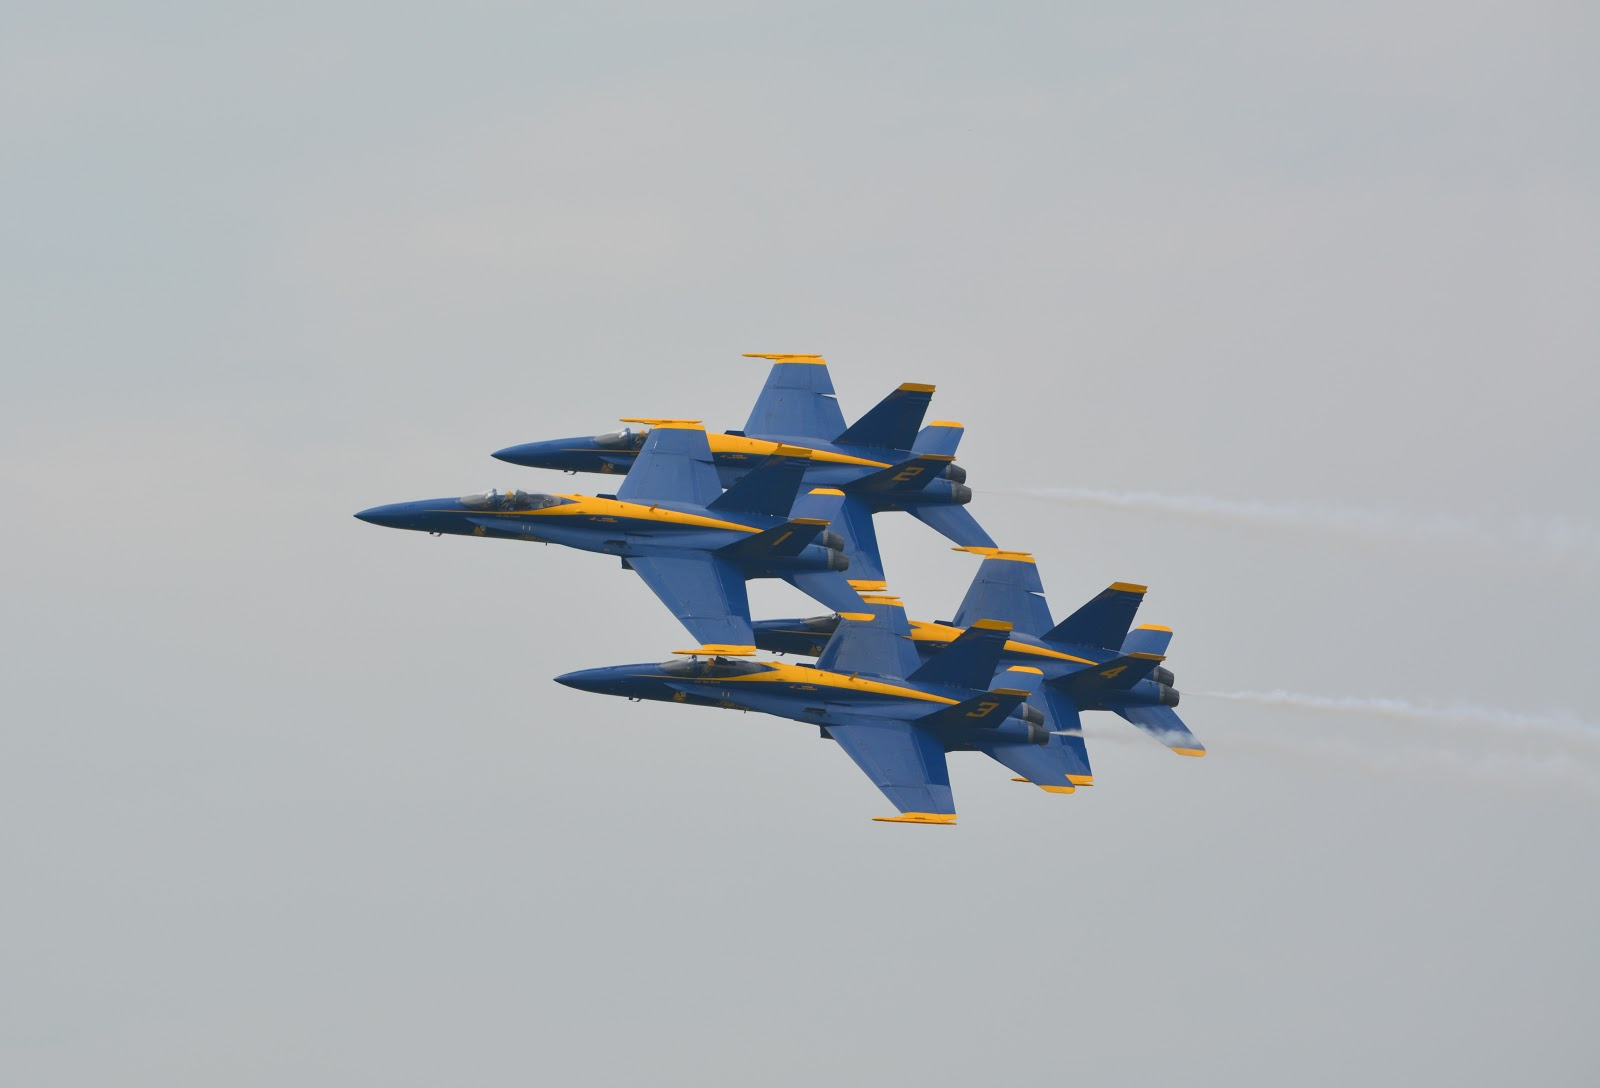 cozy birdhouse | dayton air show 2014, blue angels